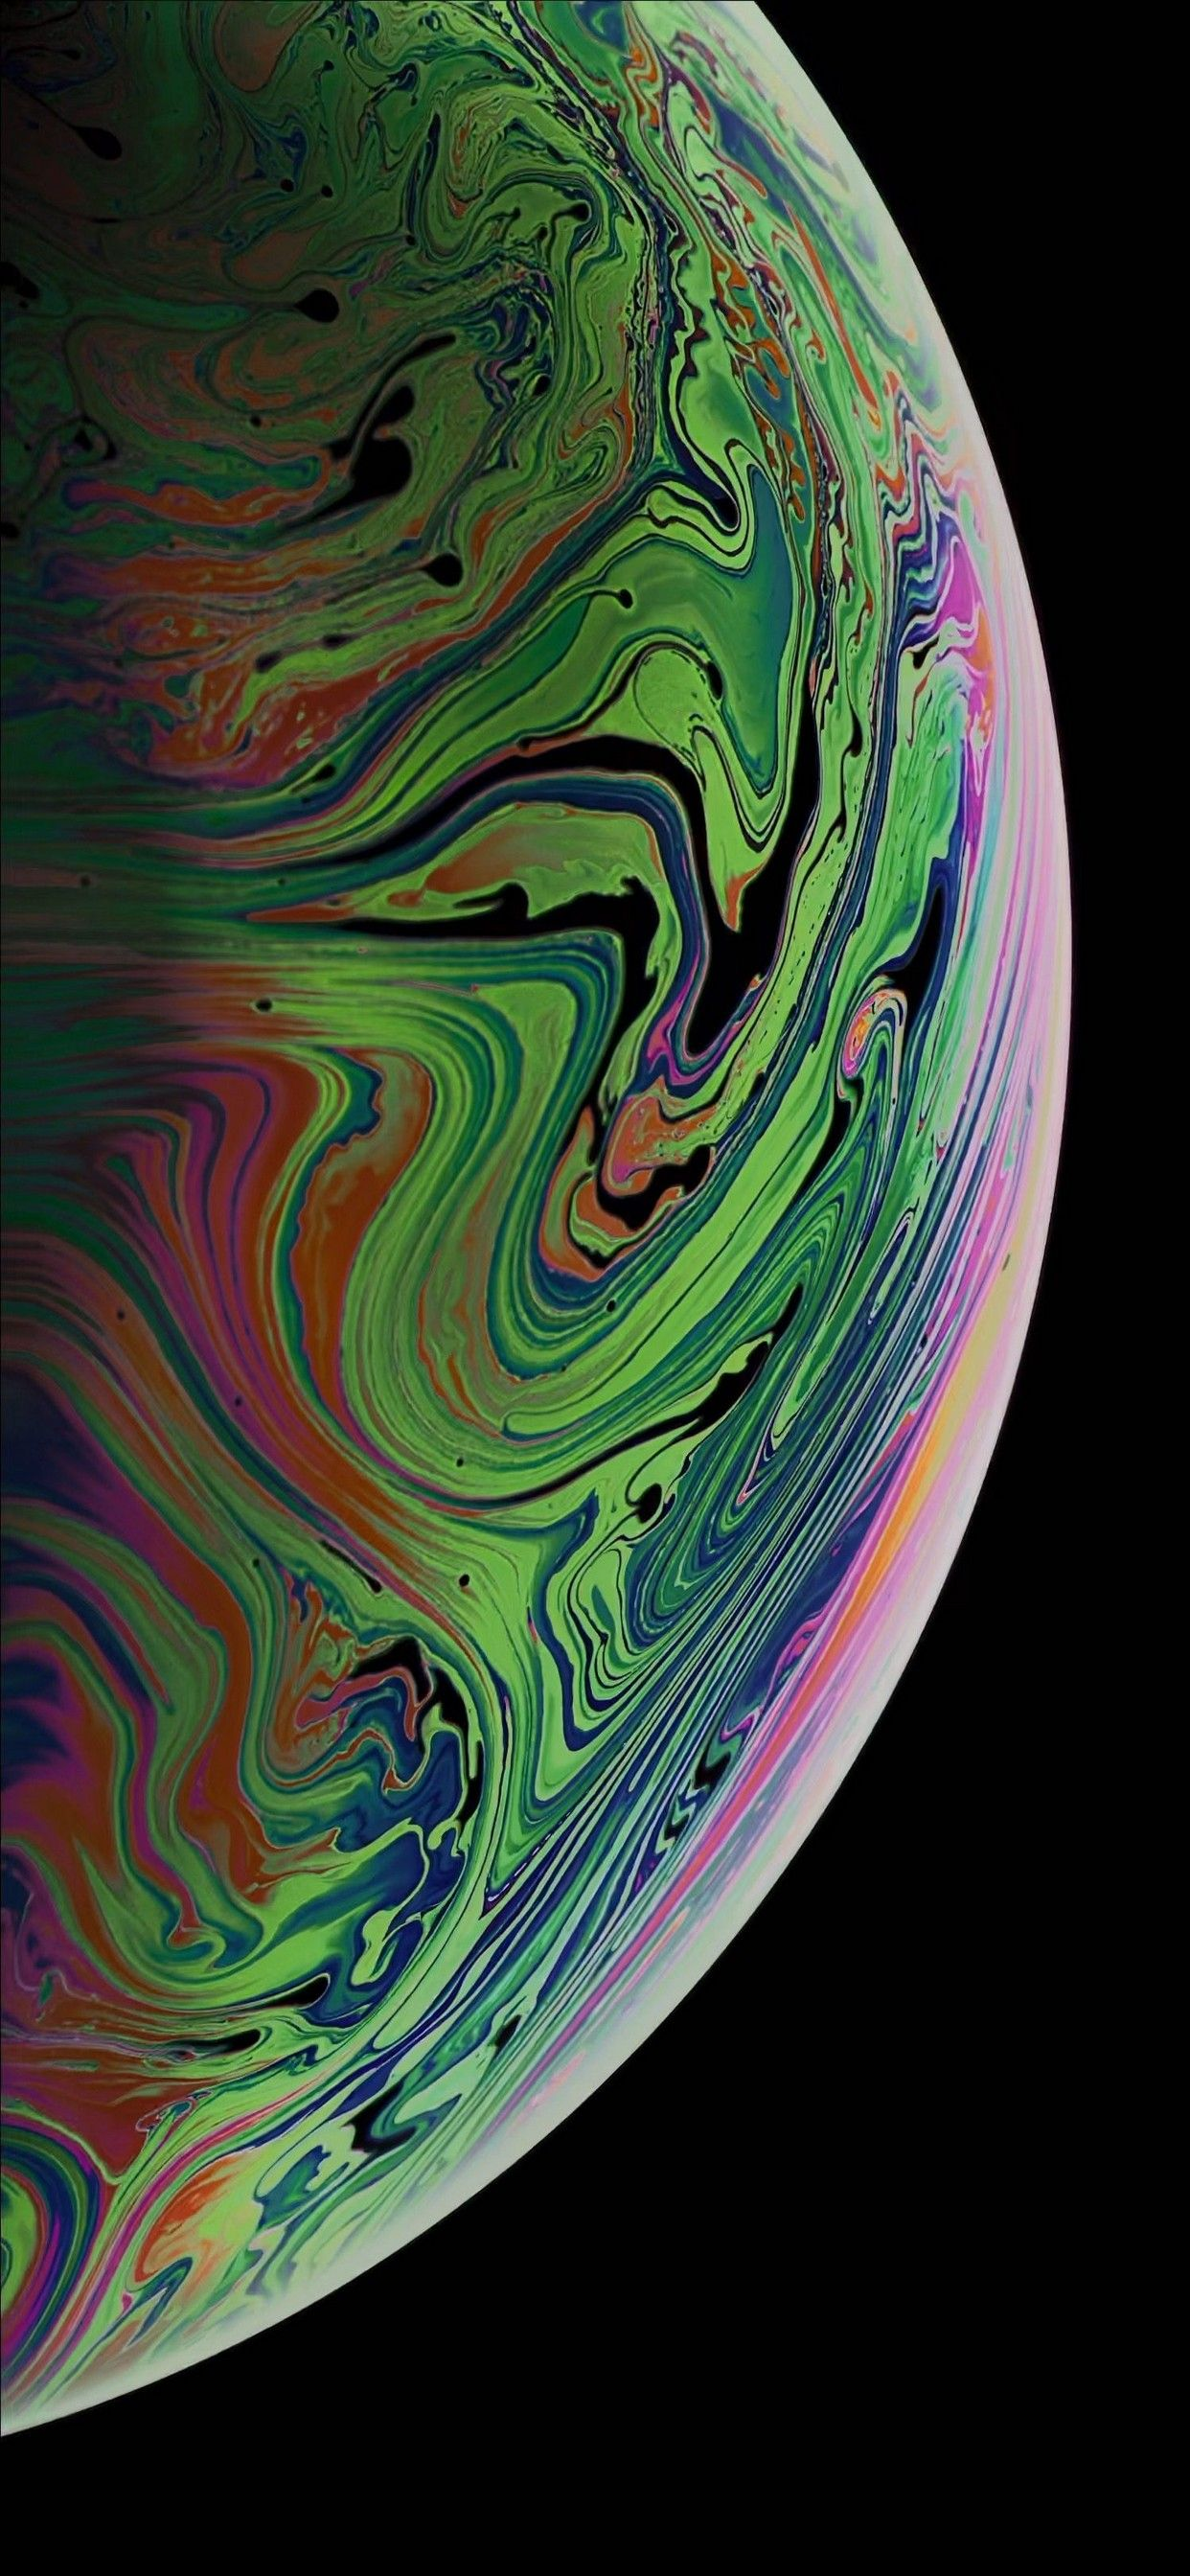 Apple Iphone Xs Max Wallpapers Top Free Apple Iphone Xs Max Backgrounds Wallpaperaccess